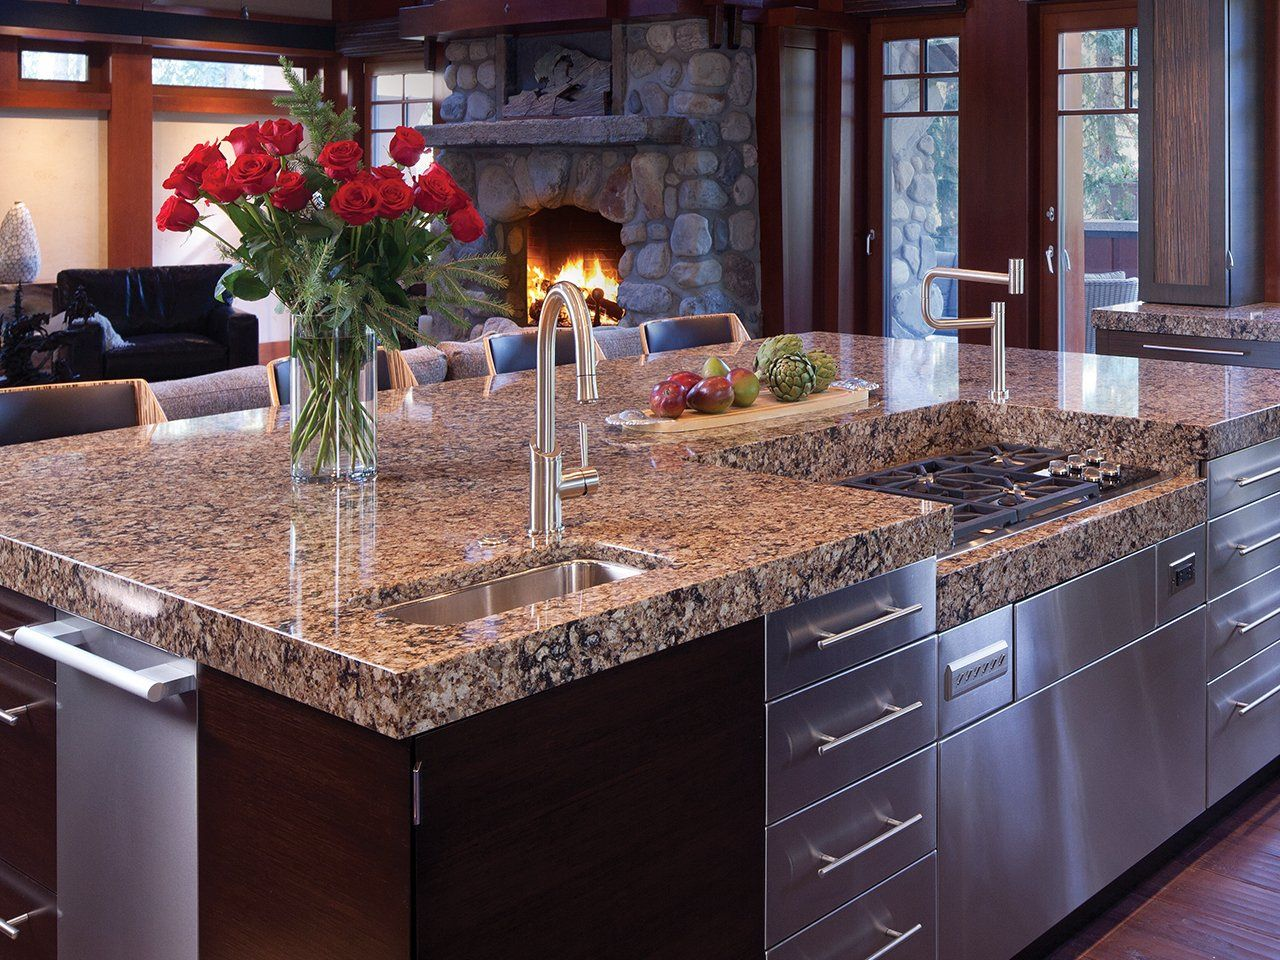 of ideas countertop pic pictures super countertops amazing kitchen that best granite probably maine craigslist